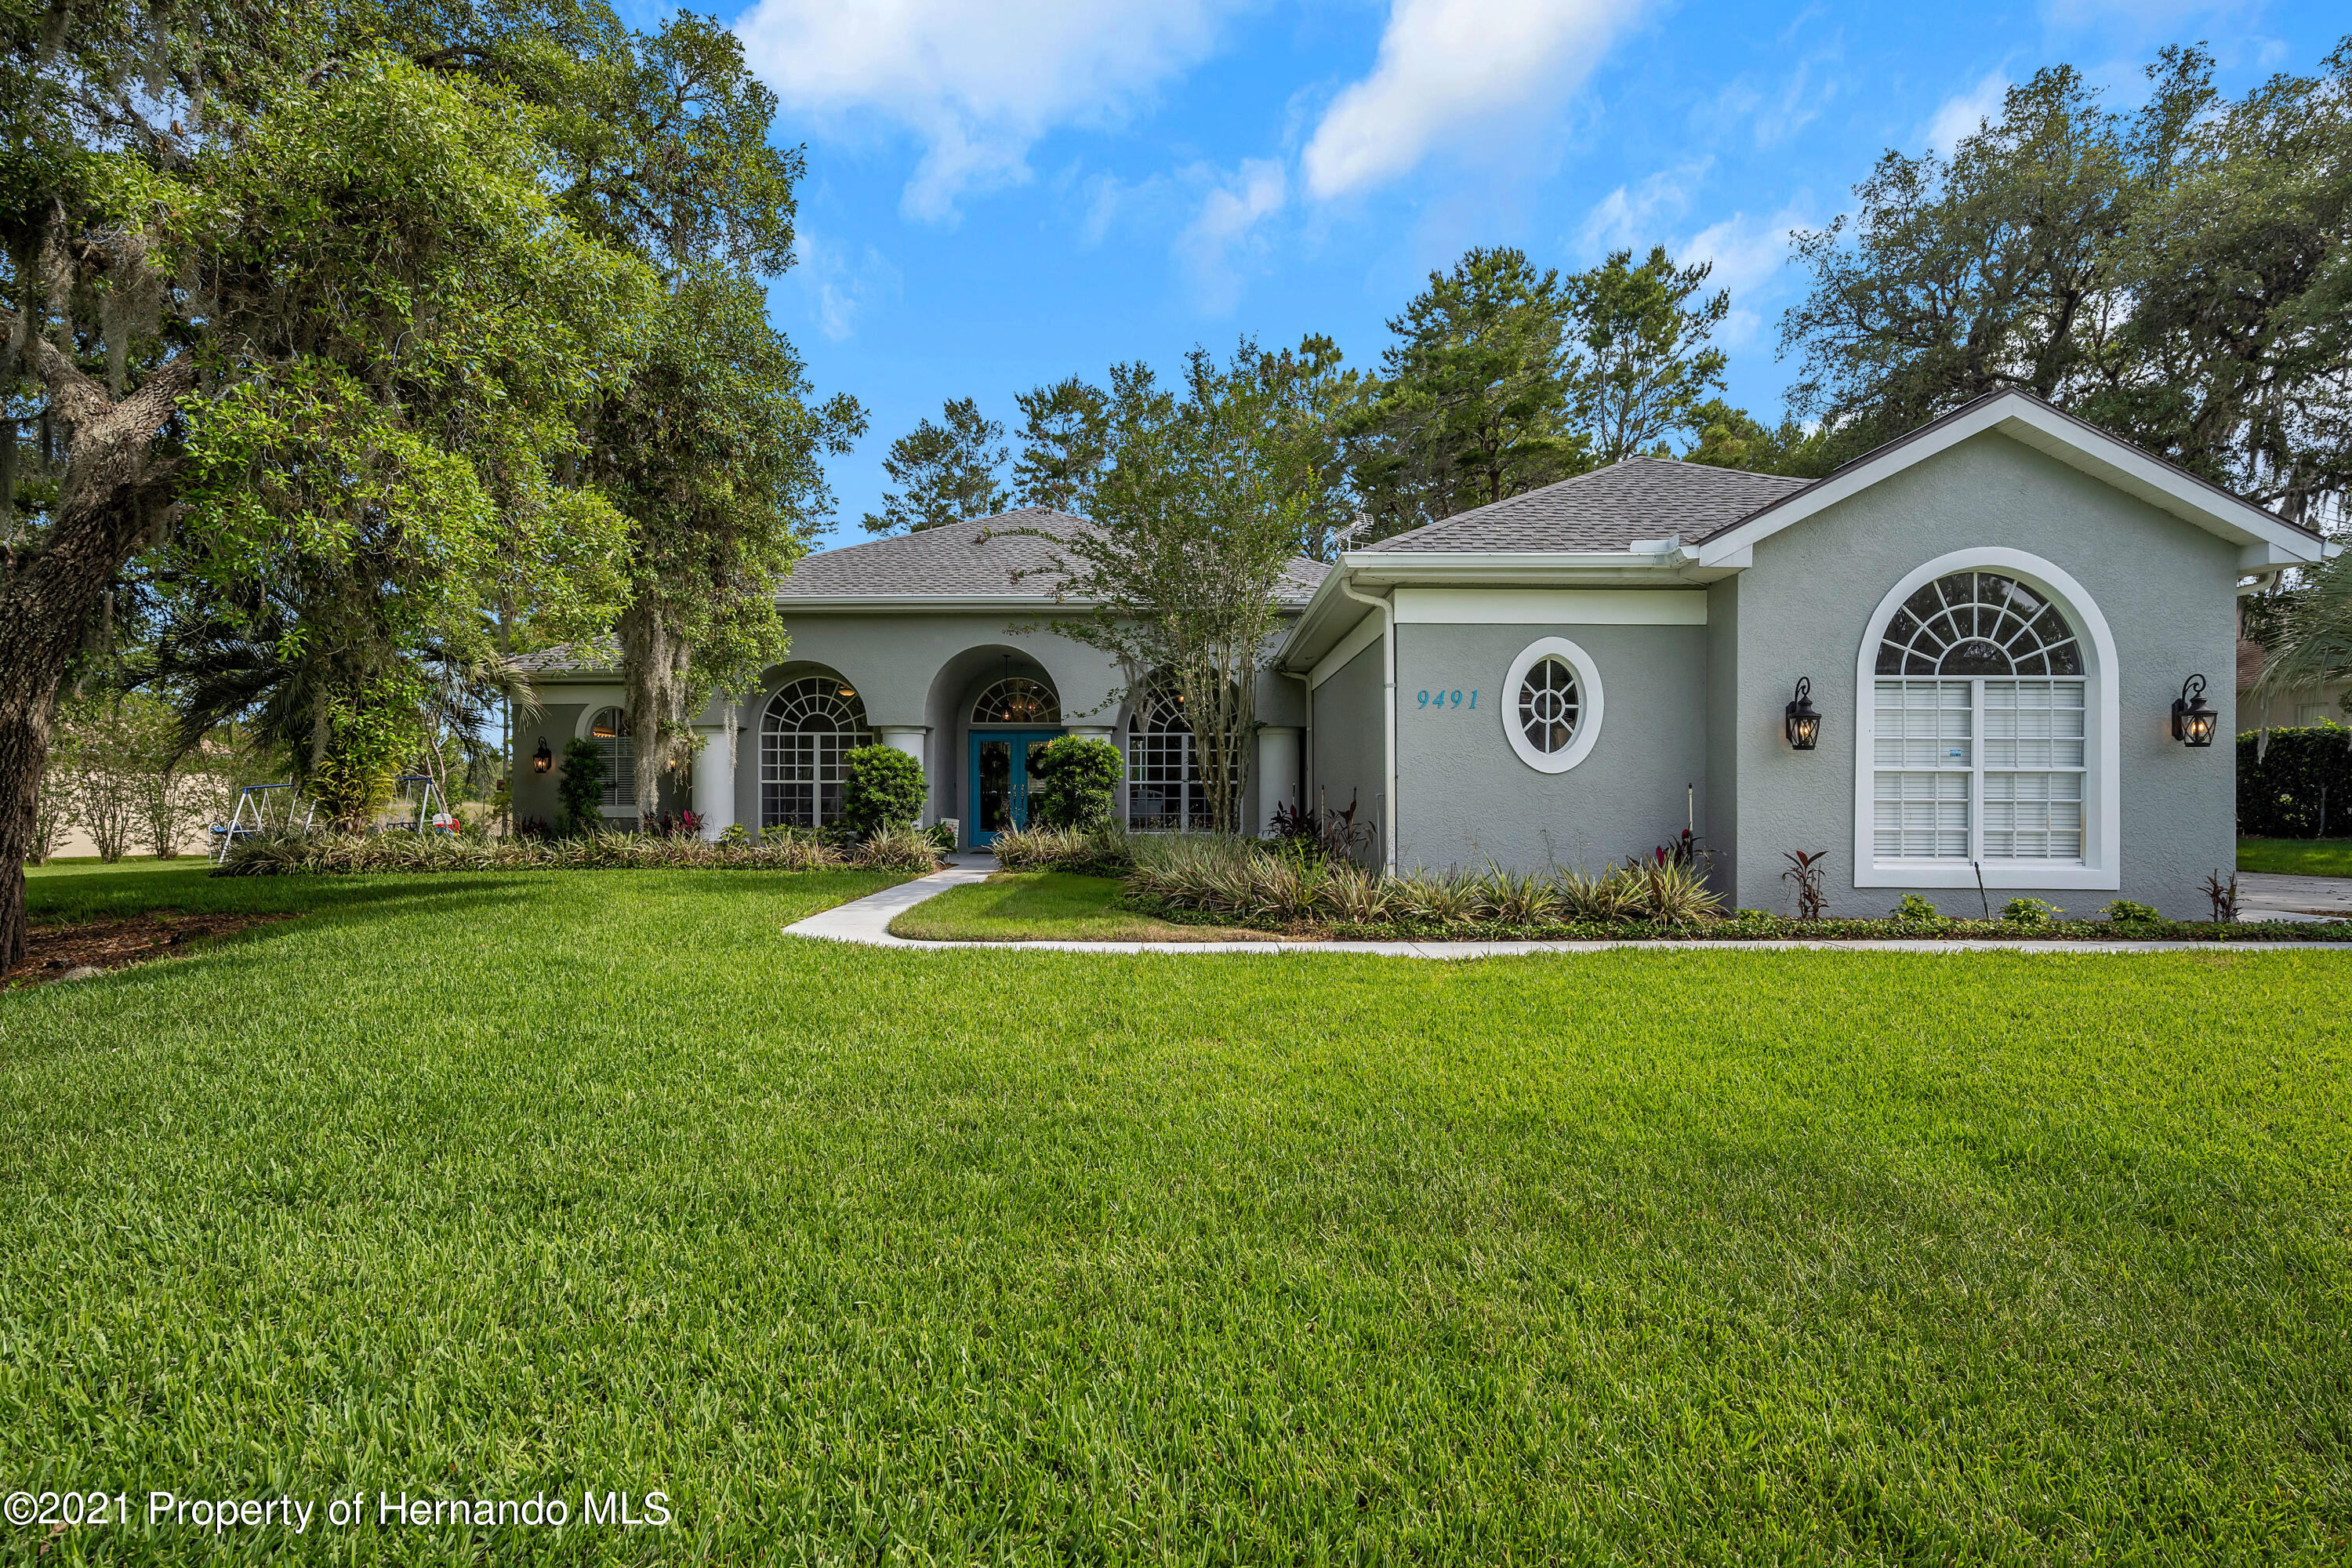 Details for 9491 Tooke Shore Drive, Weeki Wachee, FL 34613